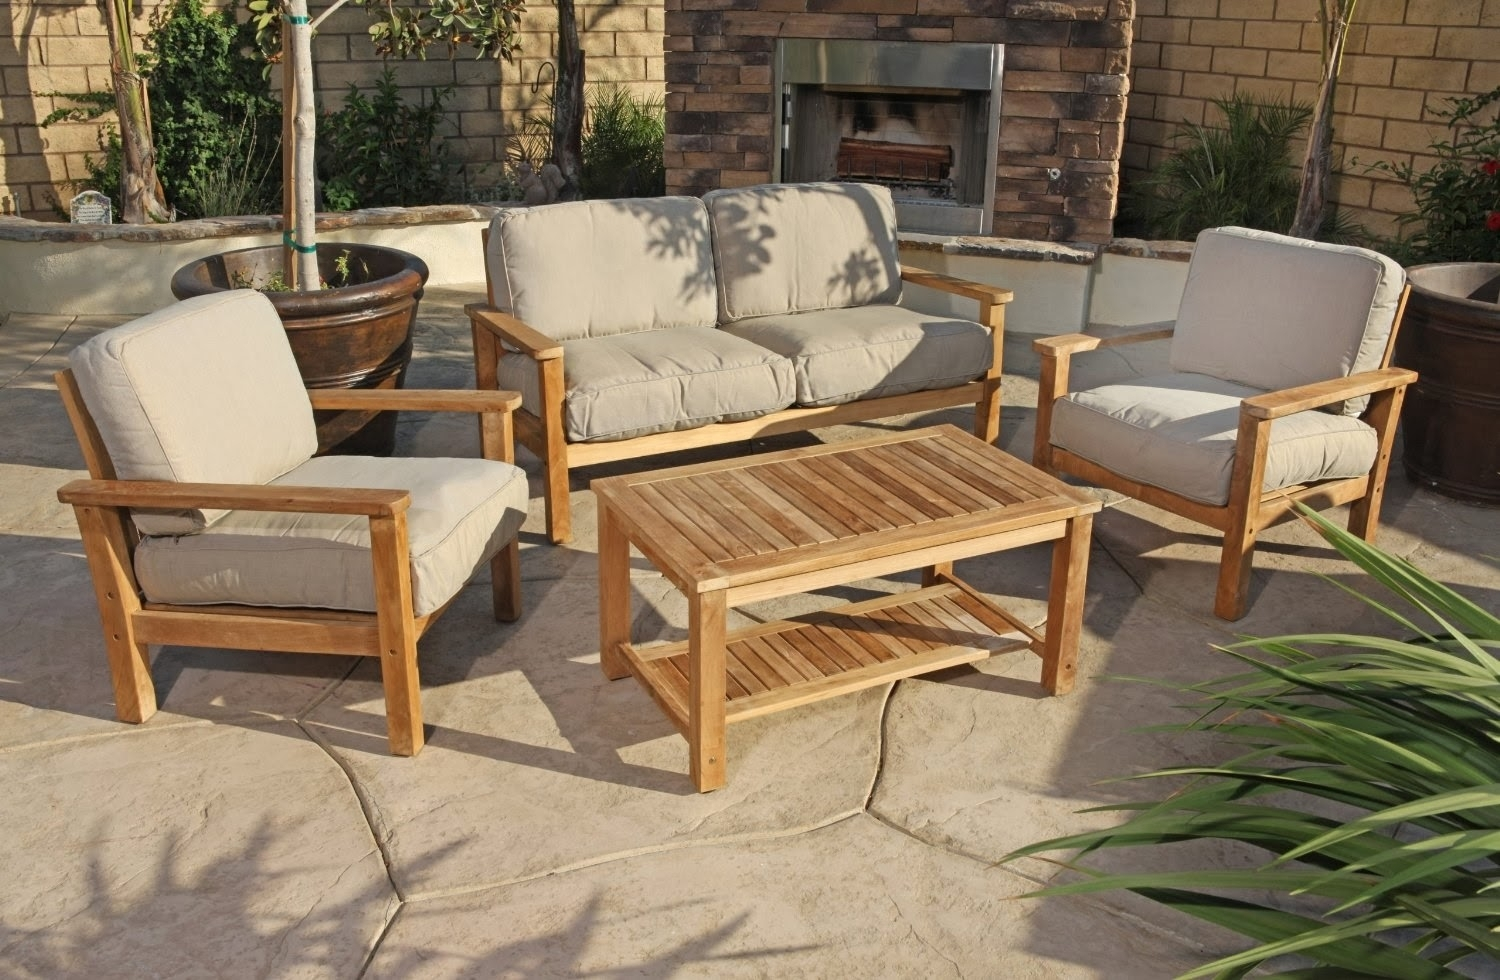 Simple Teak Smith And Hawken Outdoor Furniture